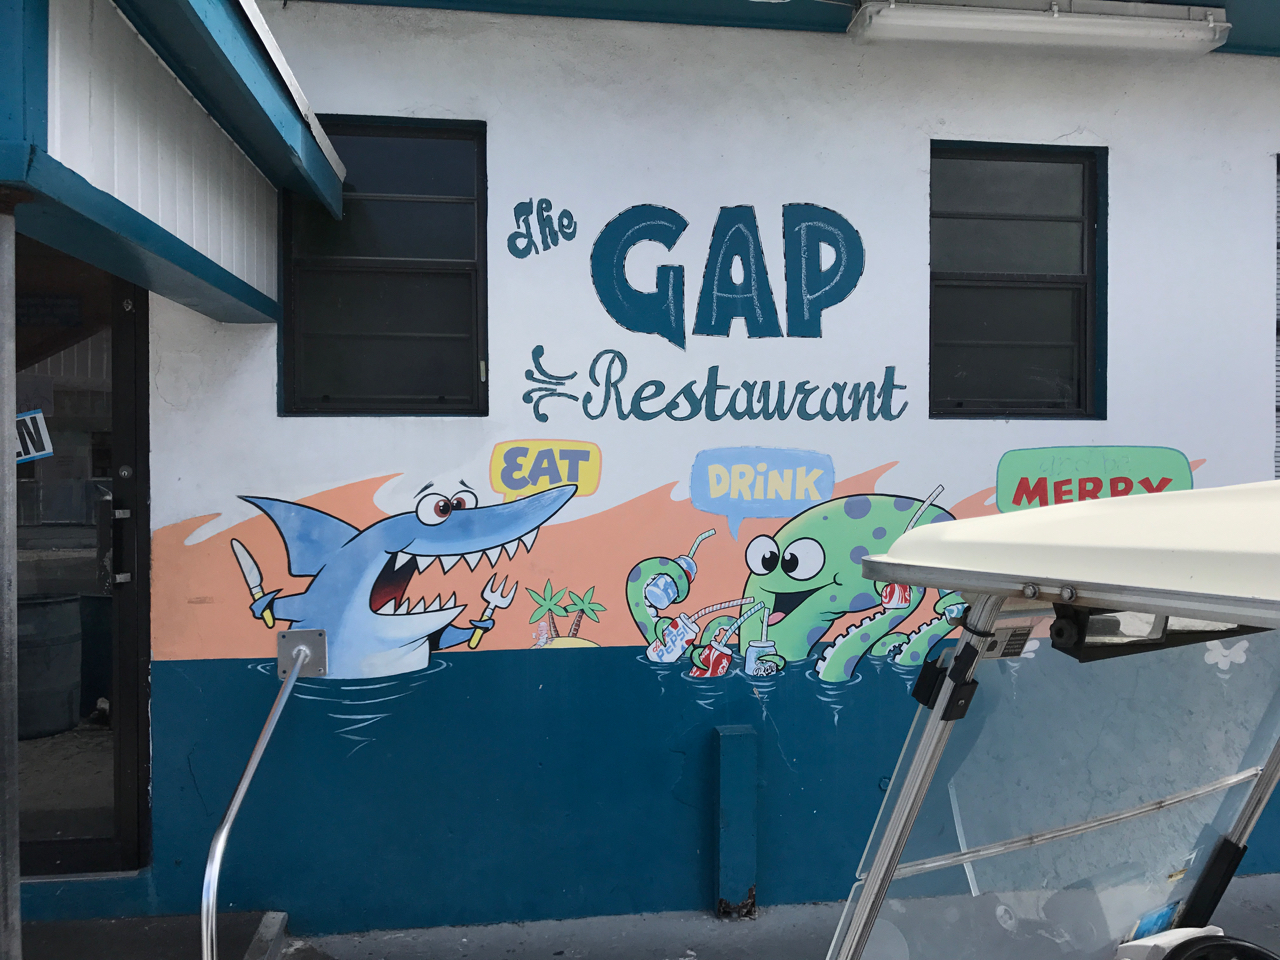 The Generation Gap Restaurant